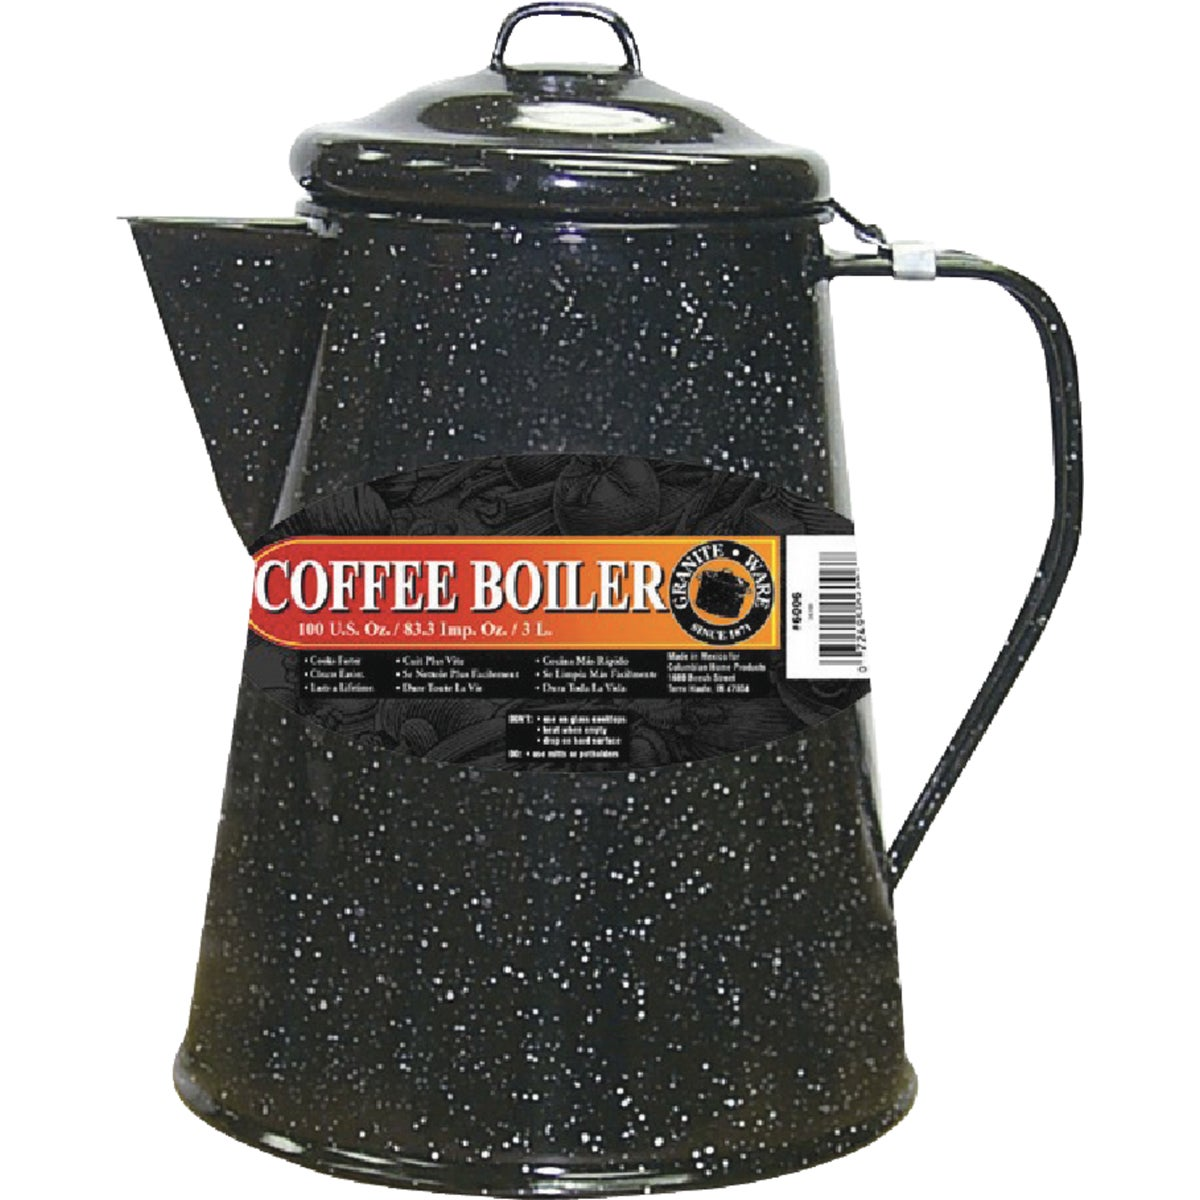 24 CUP COFFEE BOILER - 6006-1 by Columbian Home Prod